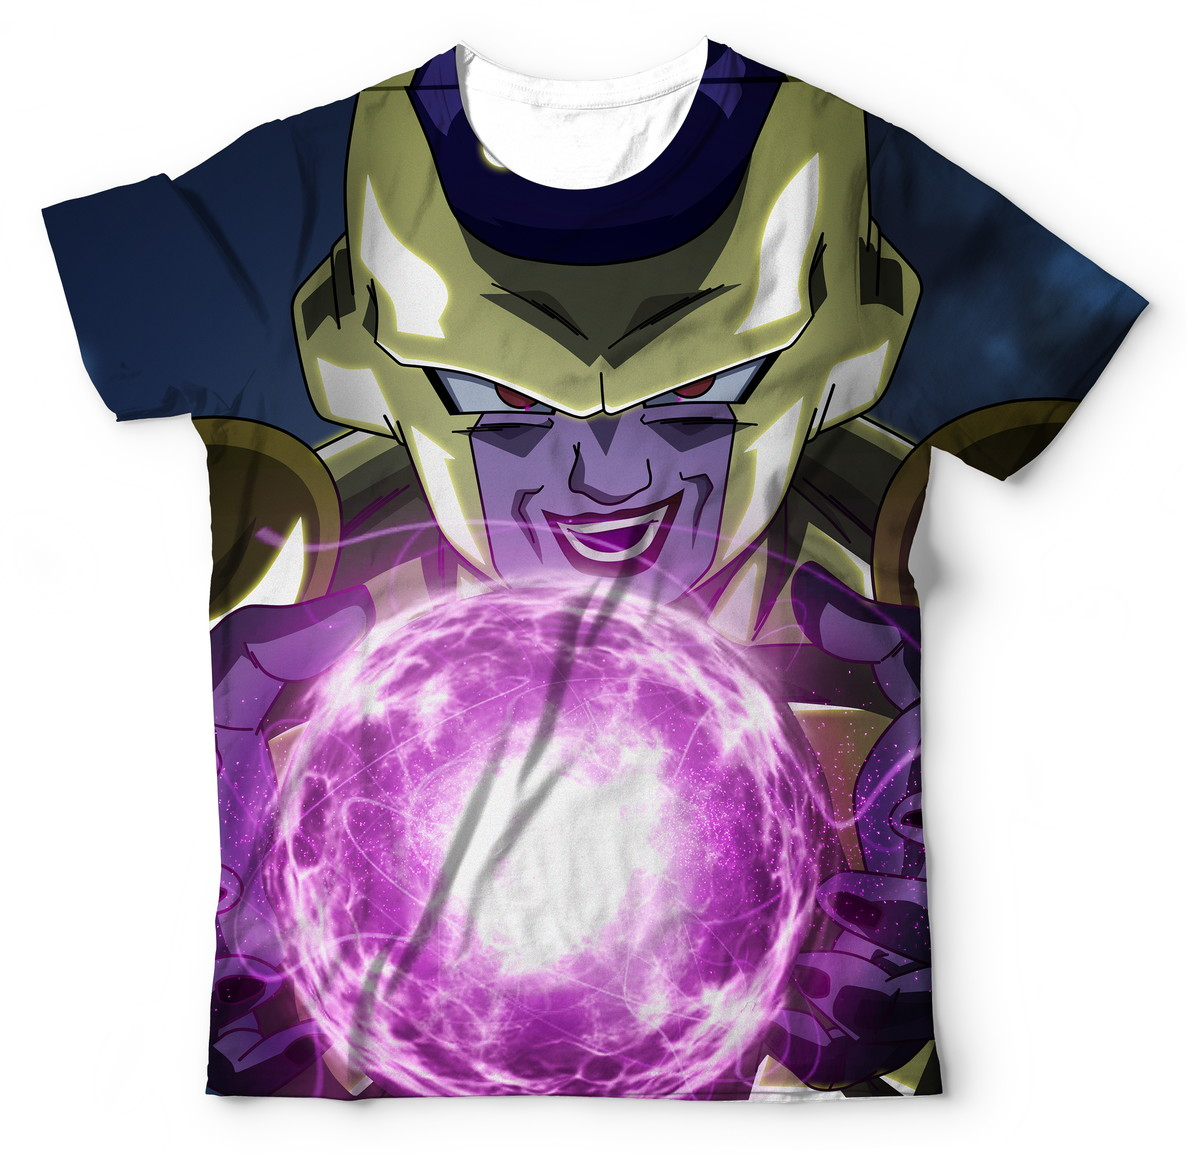 Camisa Camiseta Blusa Dragon Ball Super Freeza Dourado no Elo7 ... d7ac3a2097e